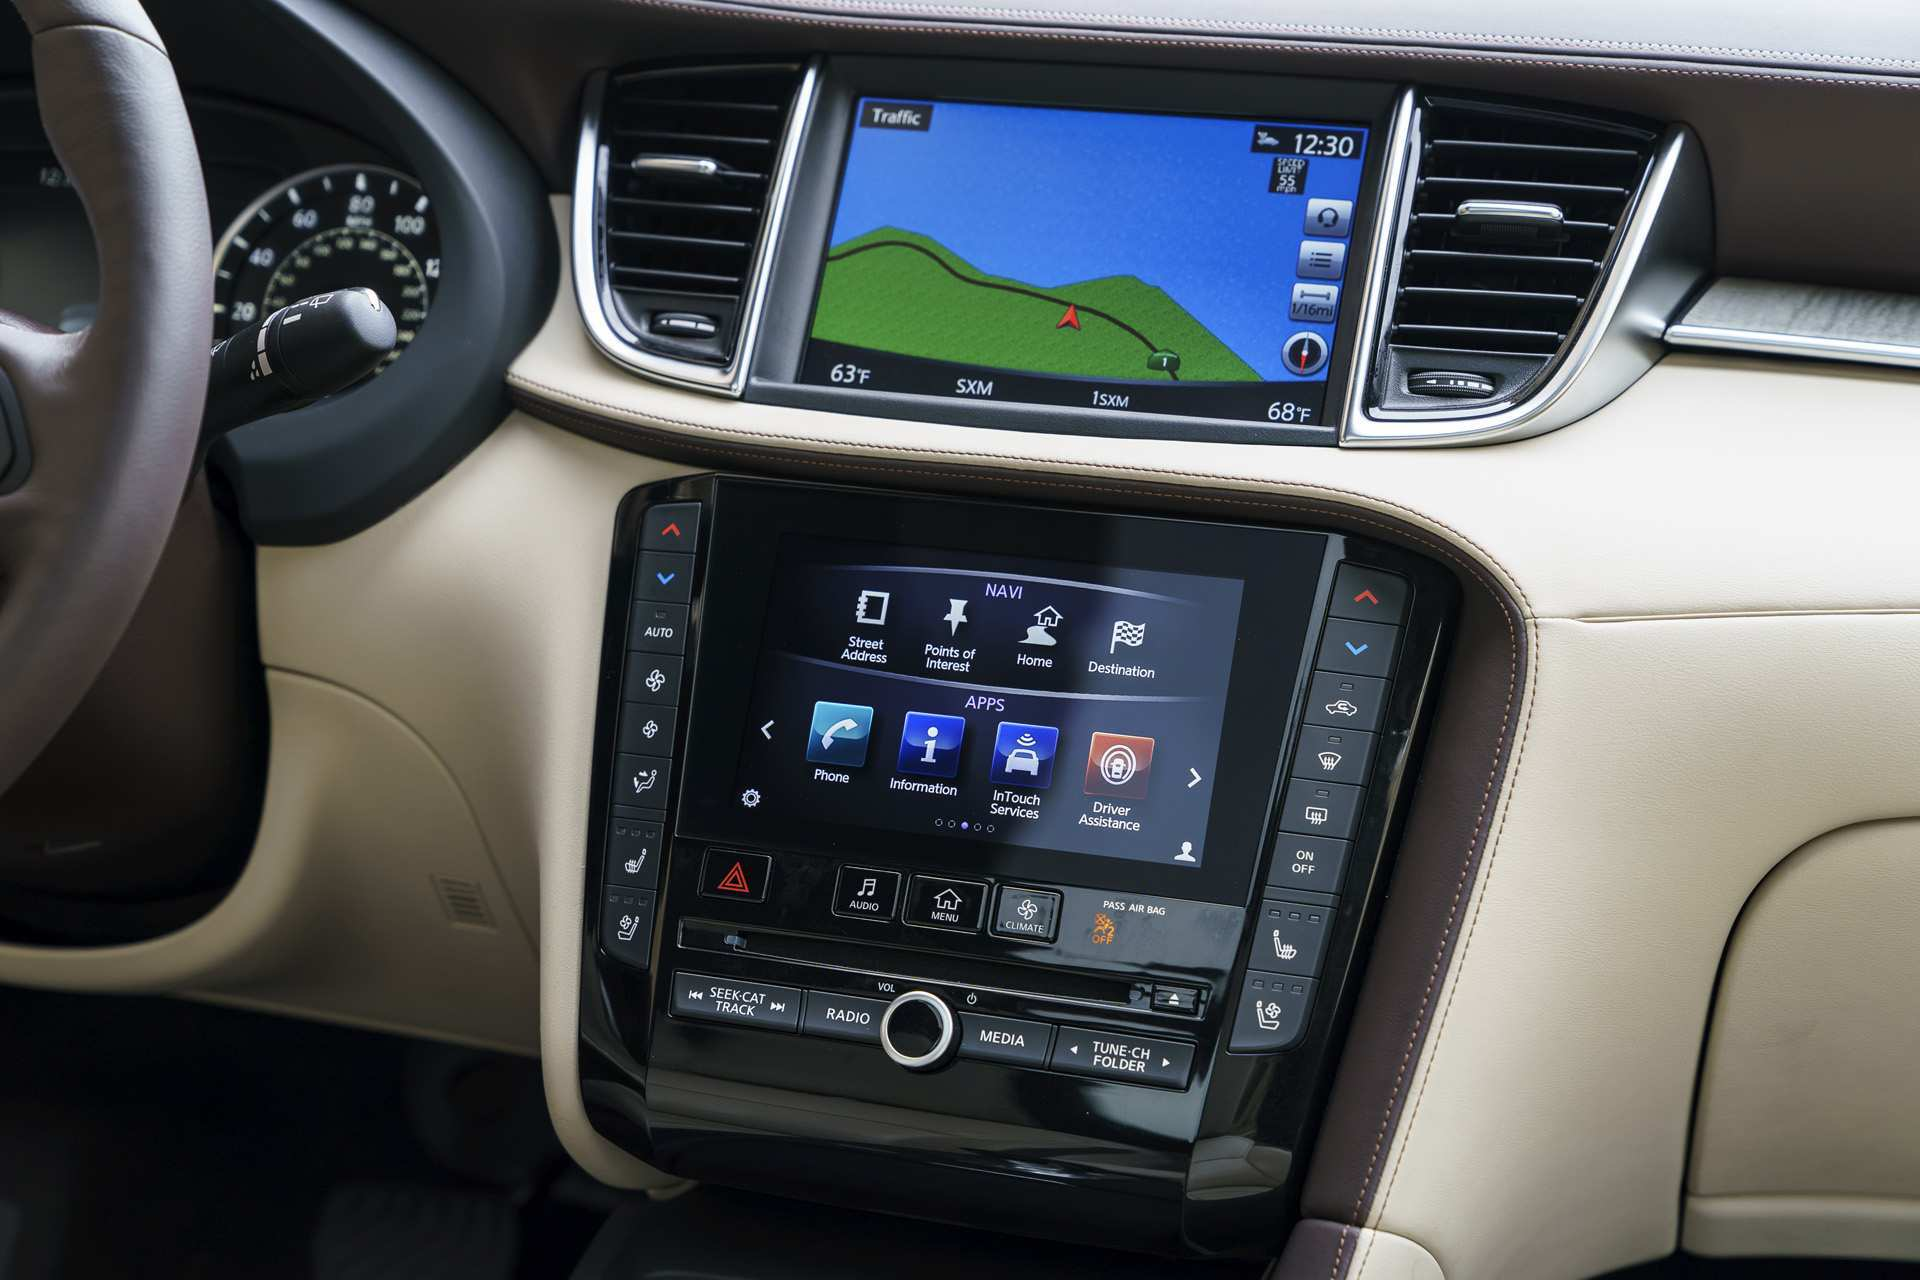 59 Concept of Infiniti Apple Carplay 2020 Reviews with Infiniti Apple Carplay 2020